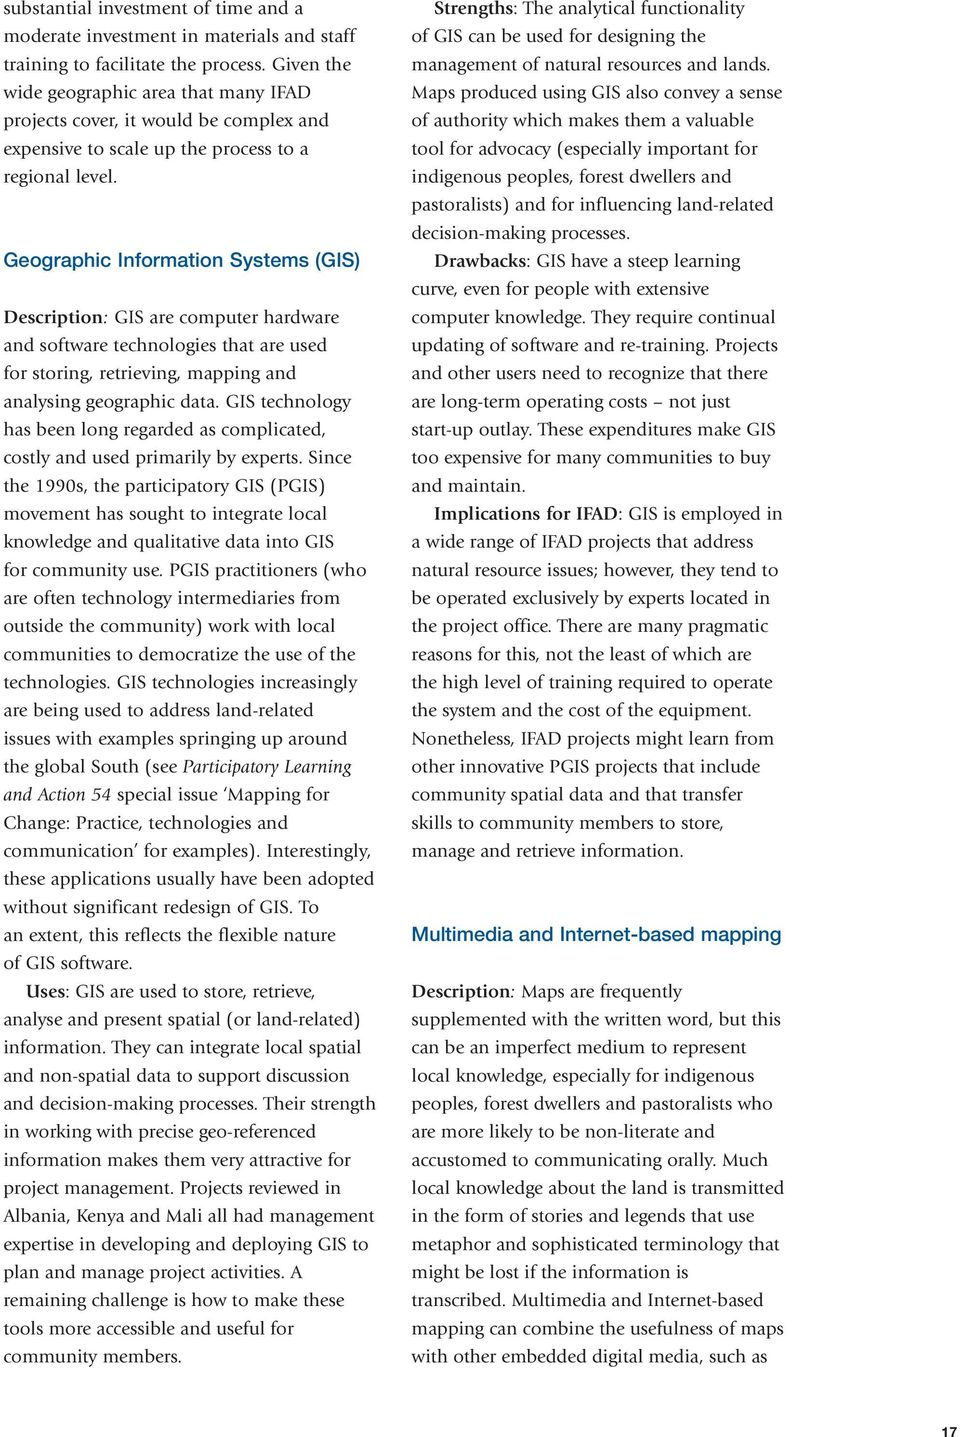 Geographic Information Systems (GIS) Description: GIS are computer hardware and software technologies that are used for storing, retrieving, mapping and analysing geographic data.